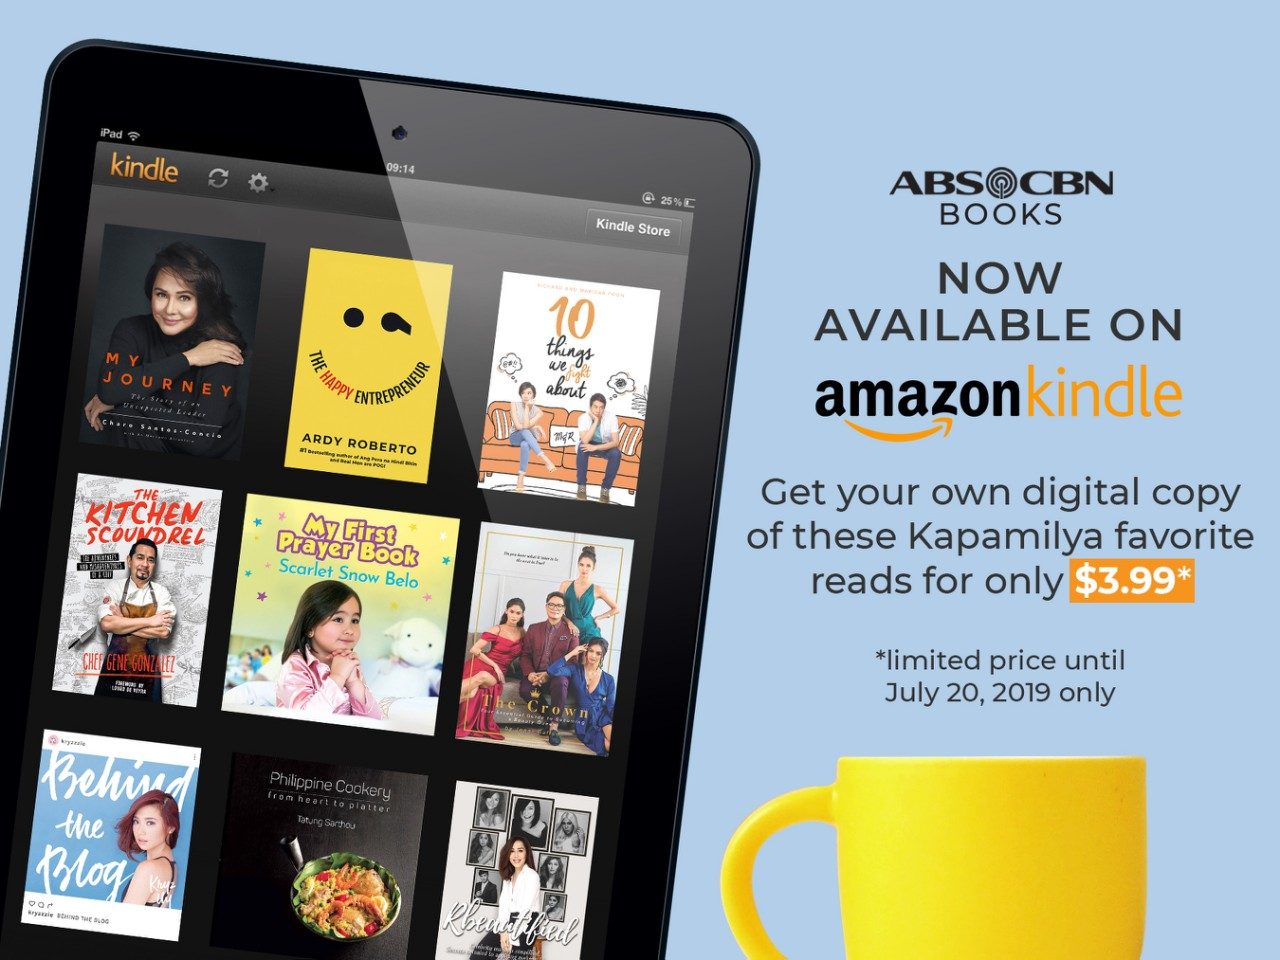 ABS-CBN Books are now on digital reading platform Amazon Kindle.